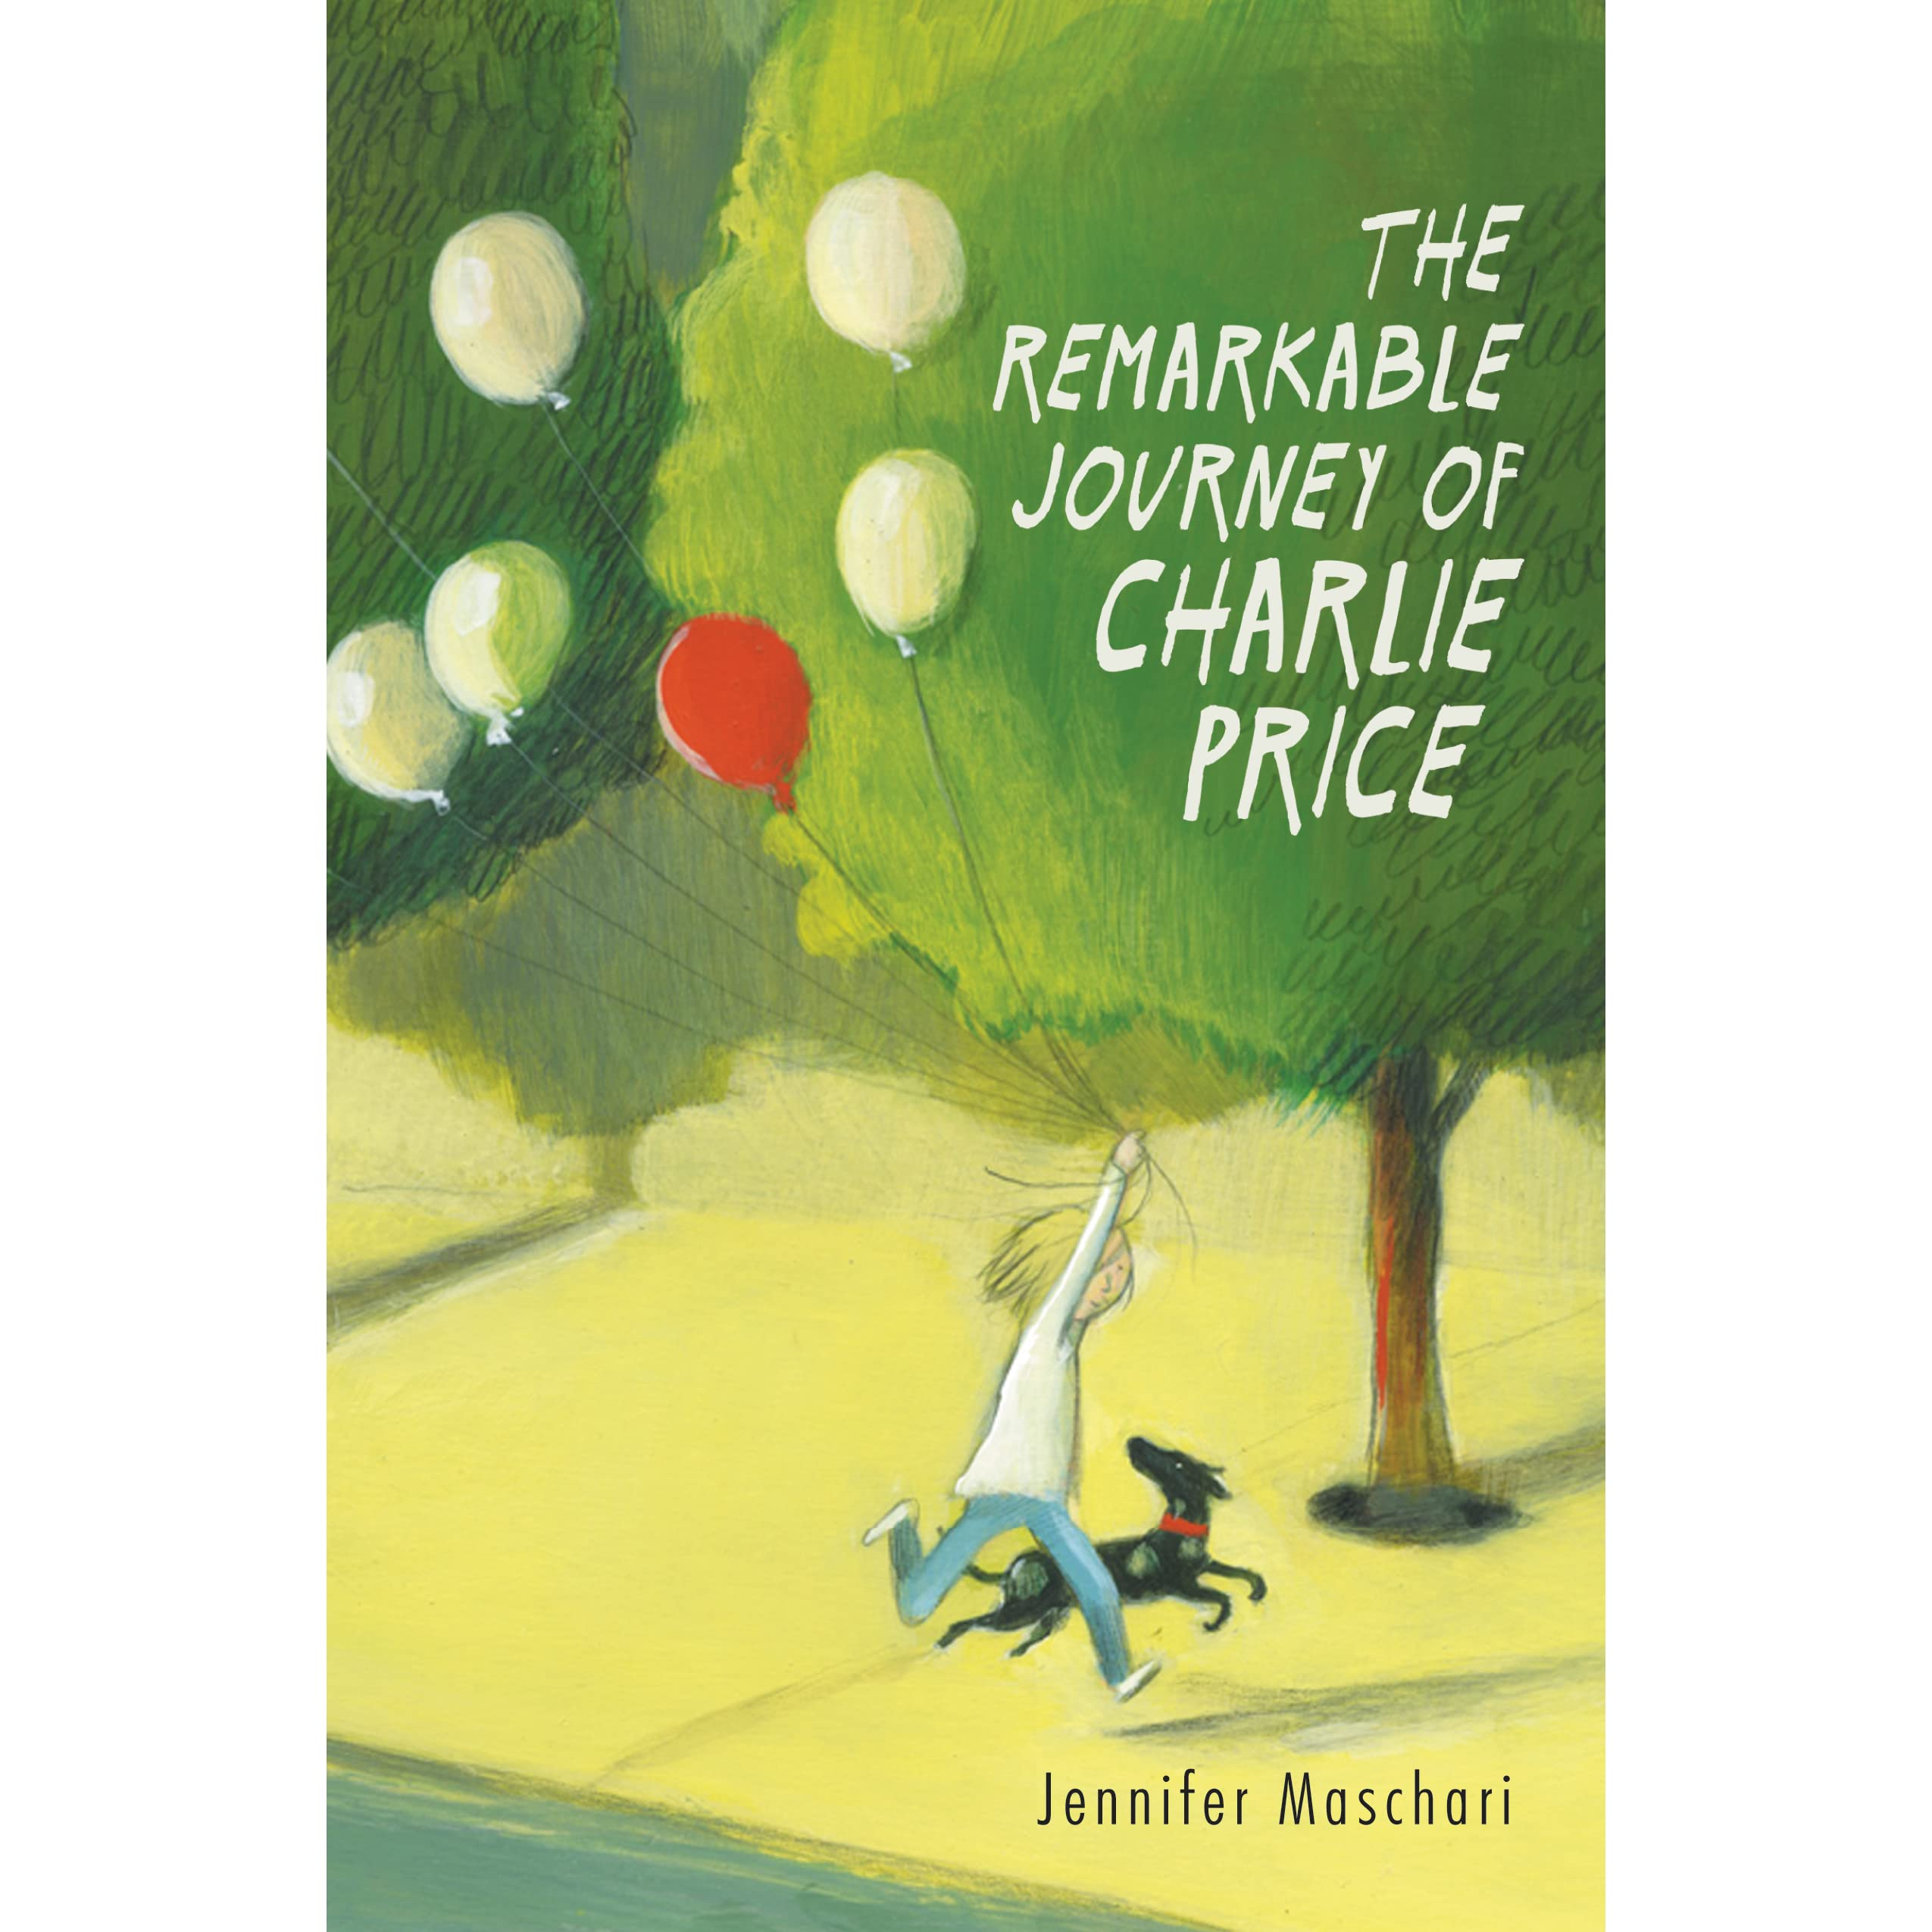 the remarkable journey of charlie price by jennifer maschari the remarkable journey of charlie price by jennifer maschari reviews discussion bookclubs lists